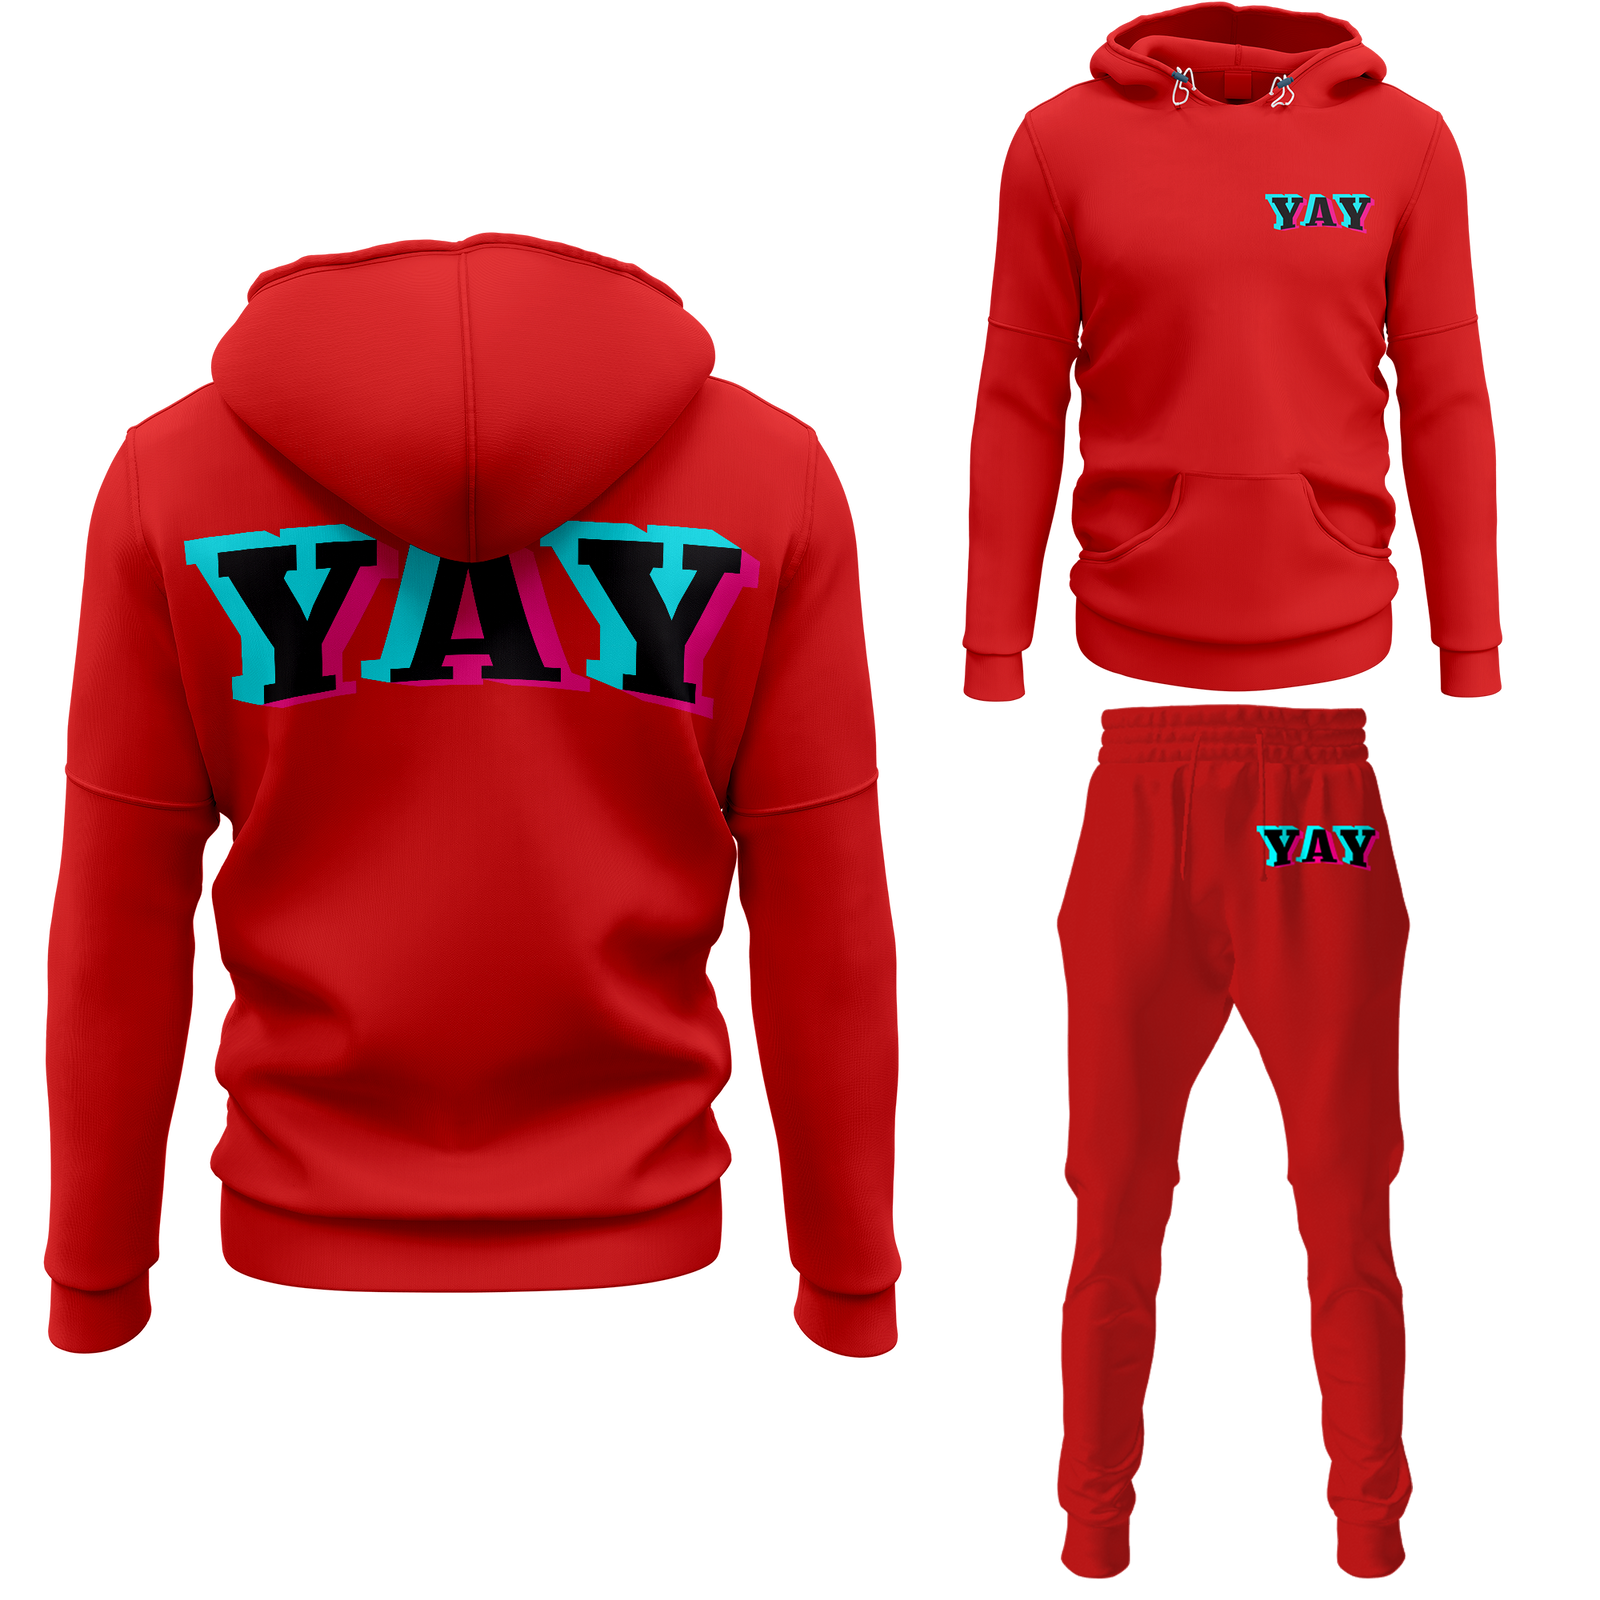 Men's Glitch Yay Pullover Sweatsuits